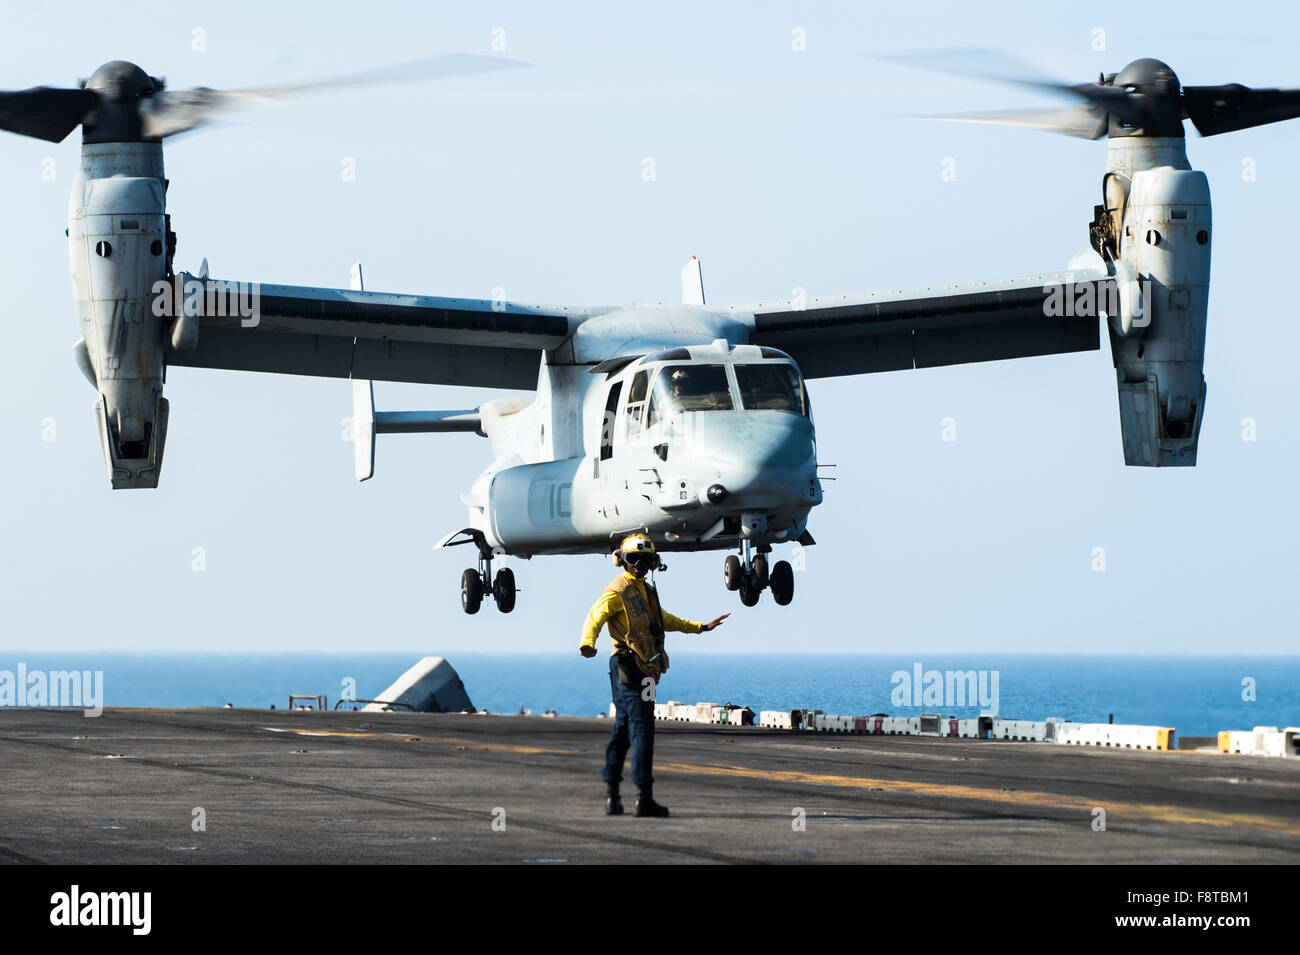 """An MV-22 Osprey from the """"Greyhawks"""" of Marine Medium-Lift Tiltrotor Squadron (VMM) 161 (Reinforced) takes off from Stock Photo"""